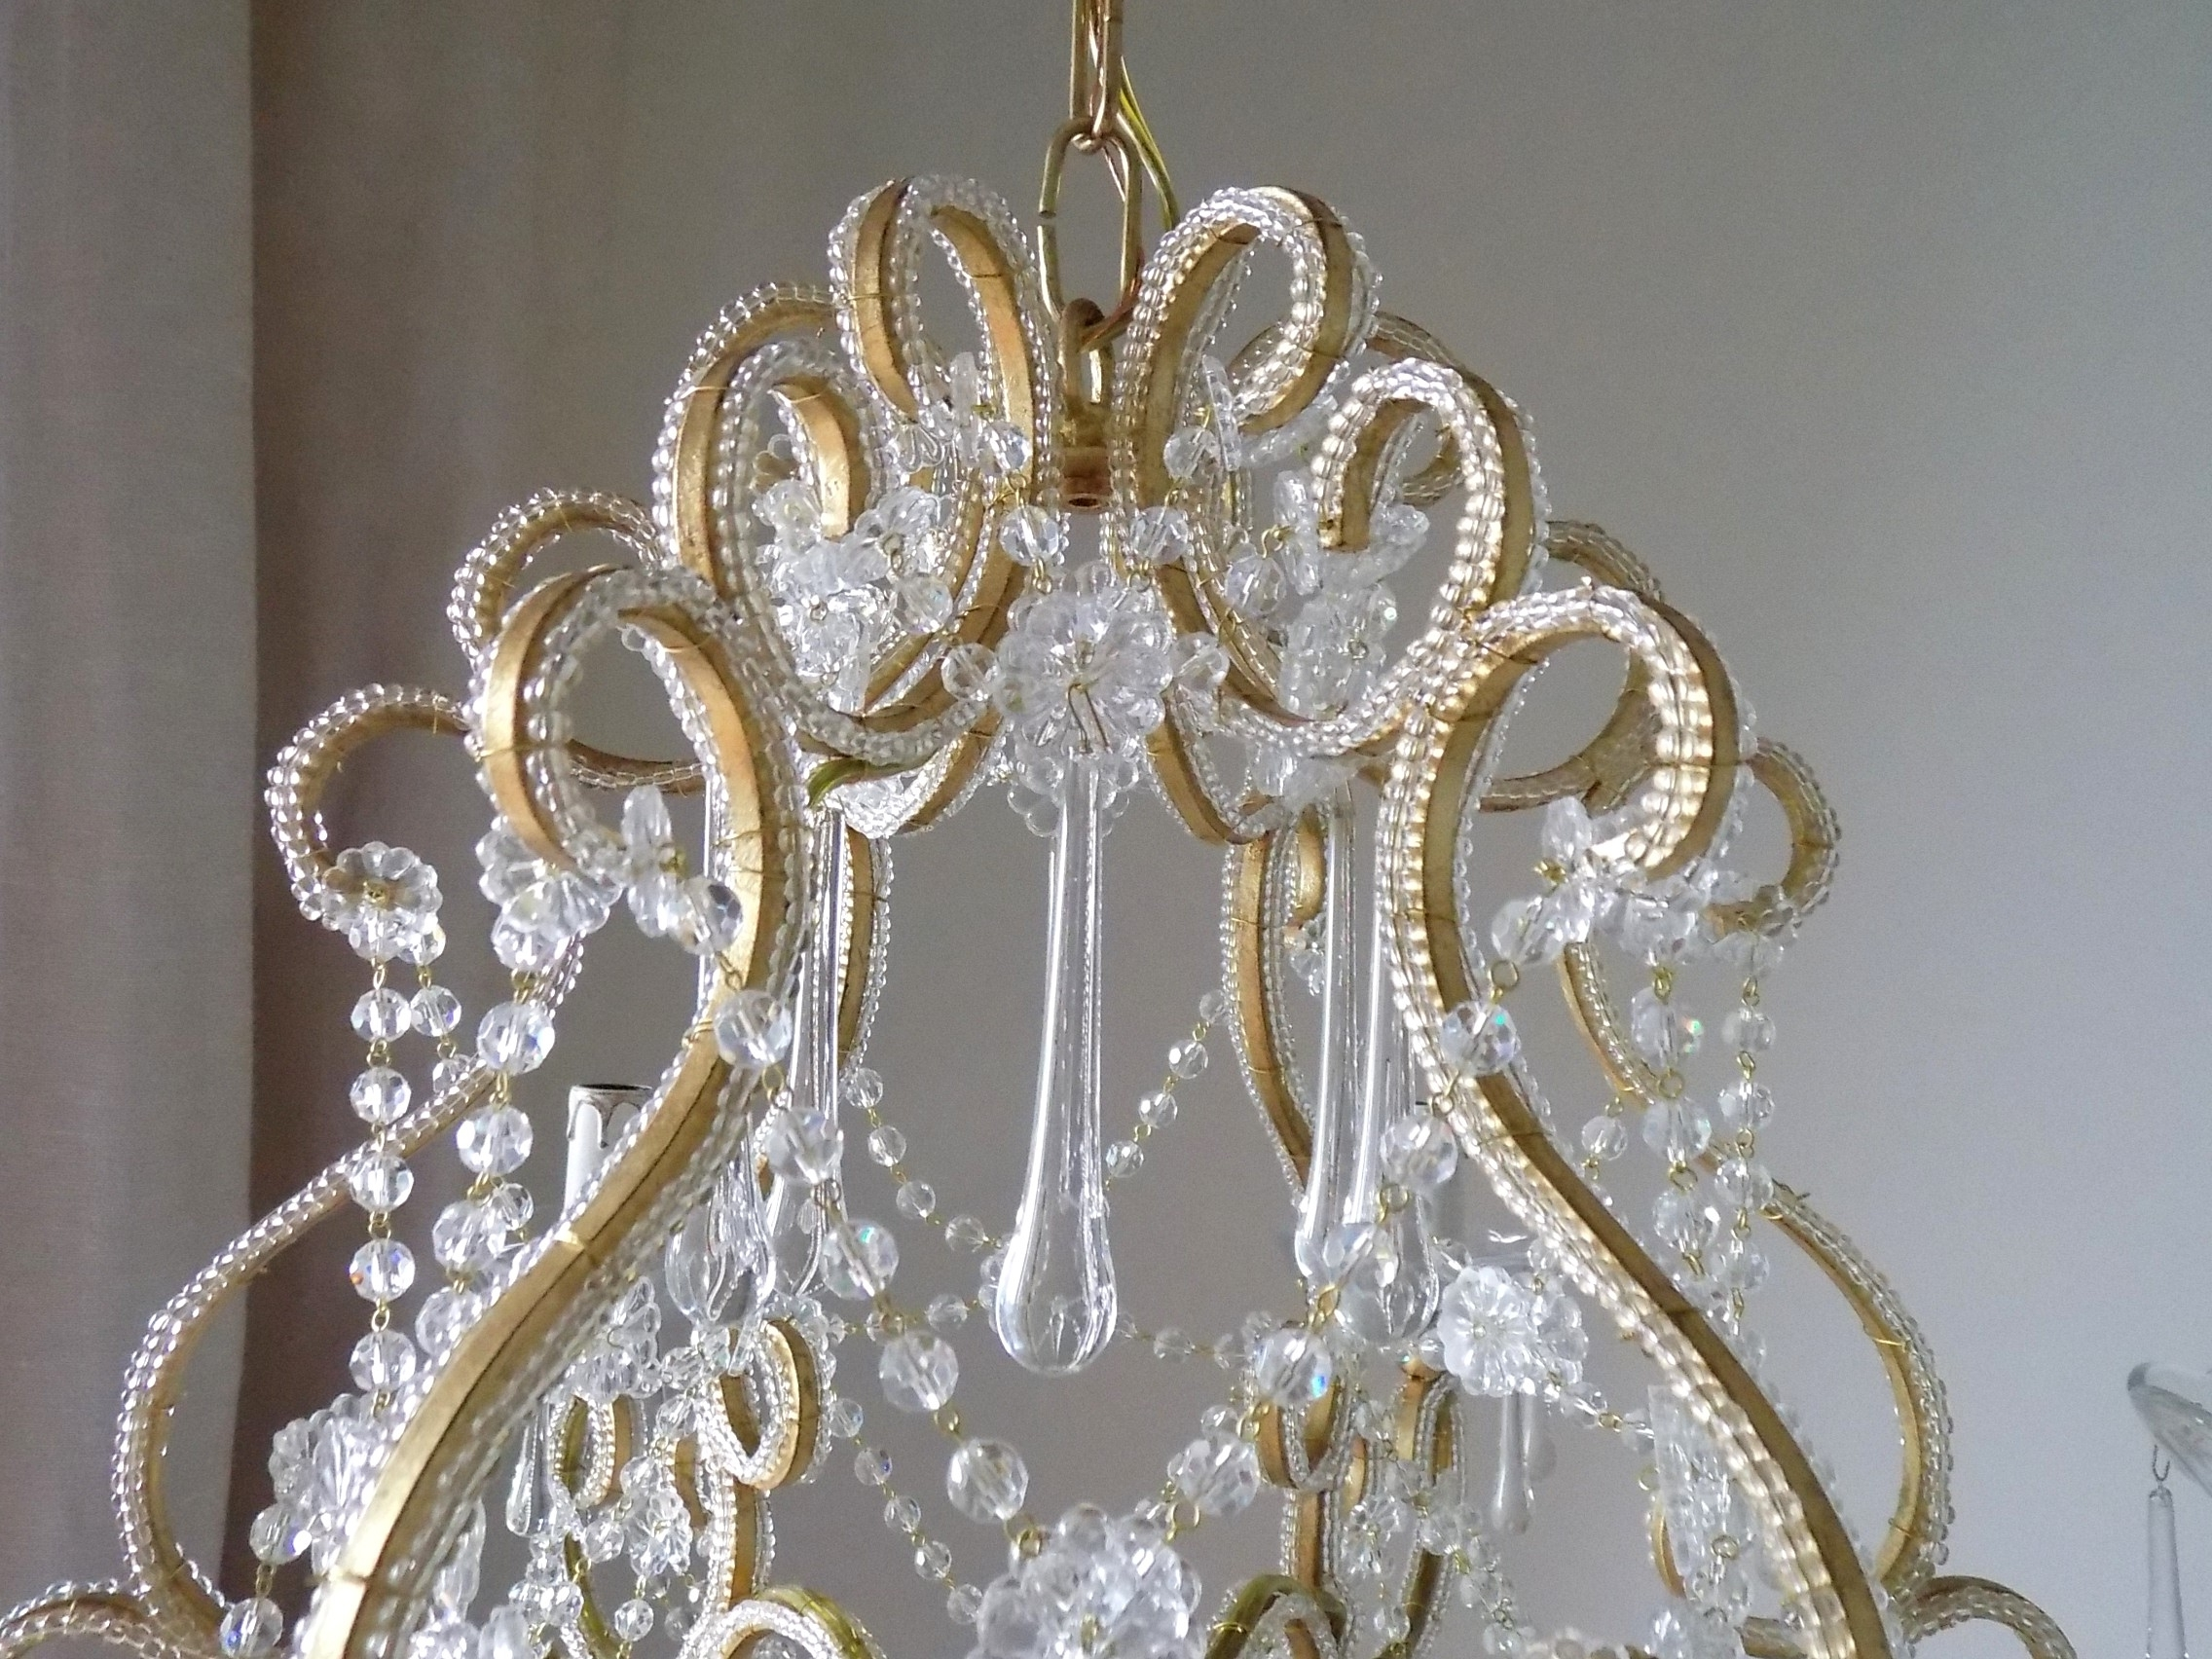 Gold Leaf Chandelier For Favorite Beaded Crystal Birdcage Chandelier Gold Leaf – Lorella Dia (View 7 of 20)